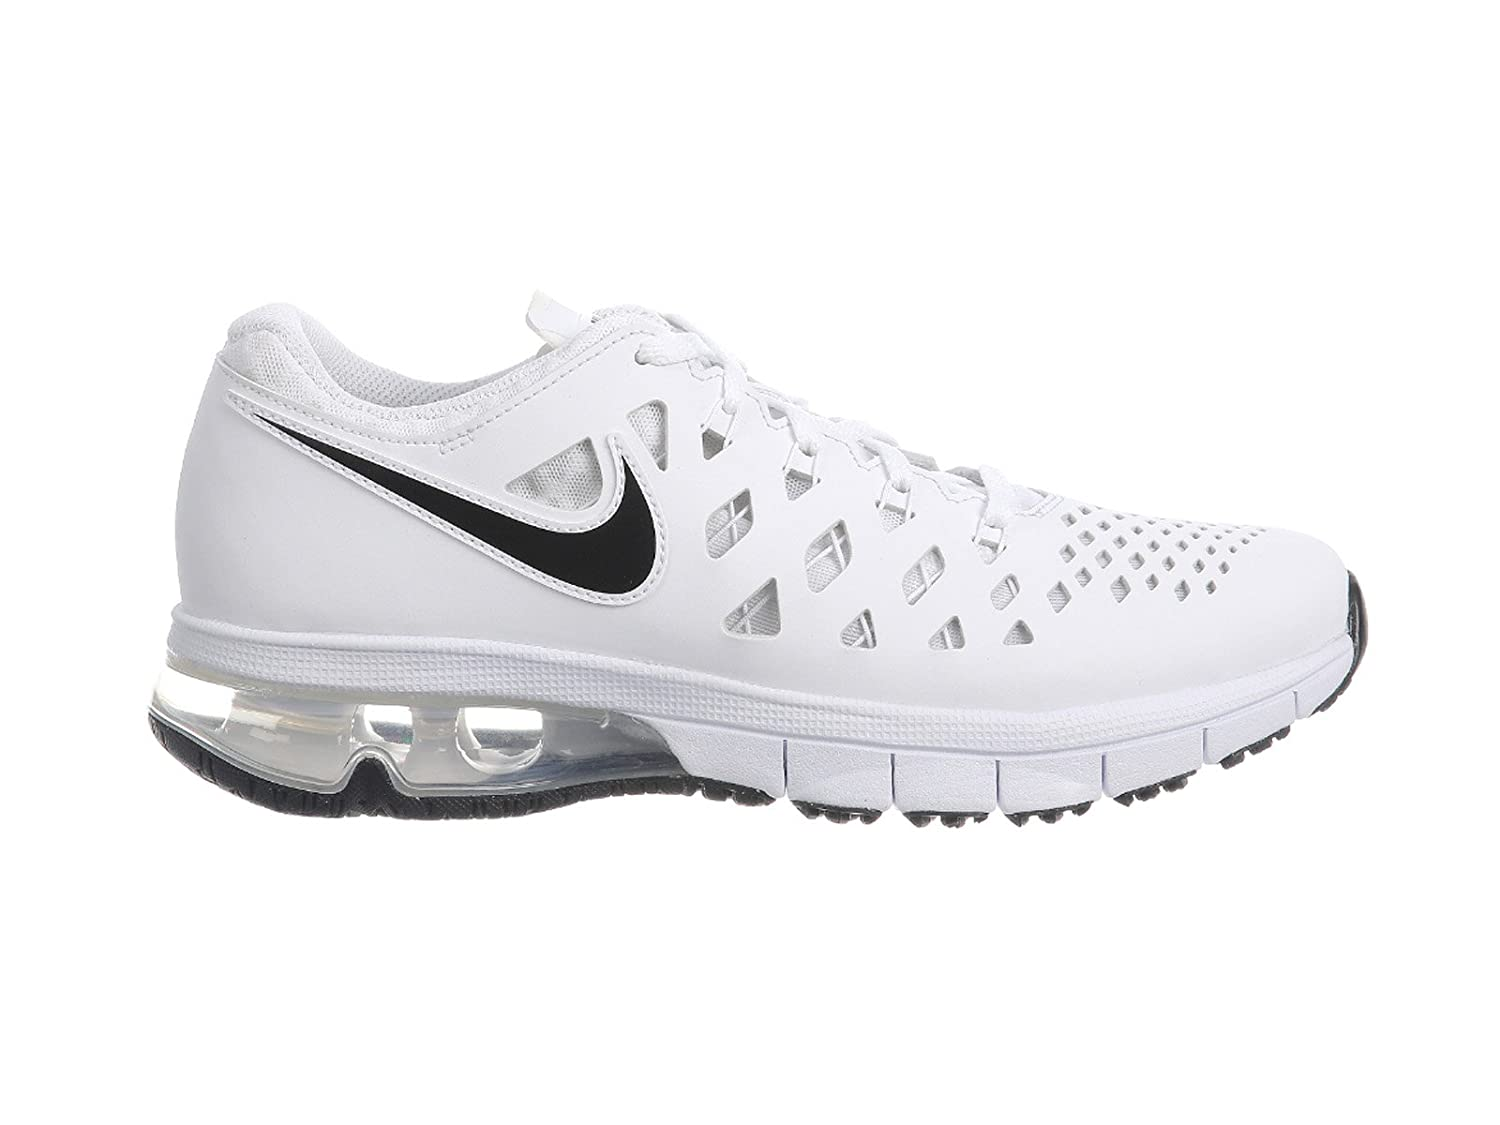 NIKE Mens Air Trainer 180 Synthetic Cross-Trainers Shoes B071G2Q3PP 10 D(M) US|White/Black-black